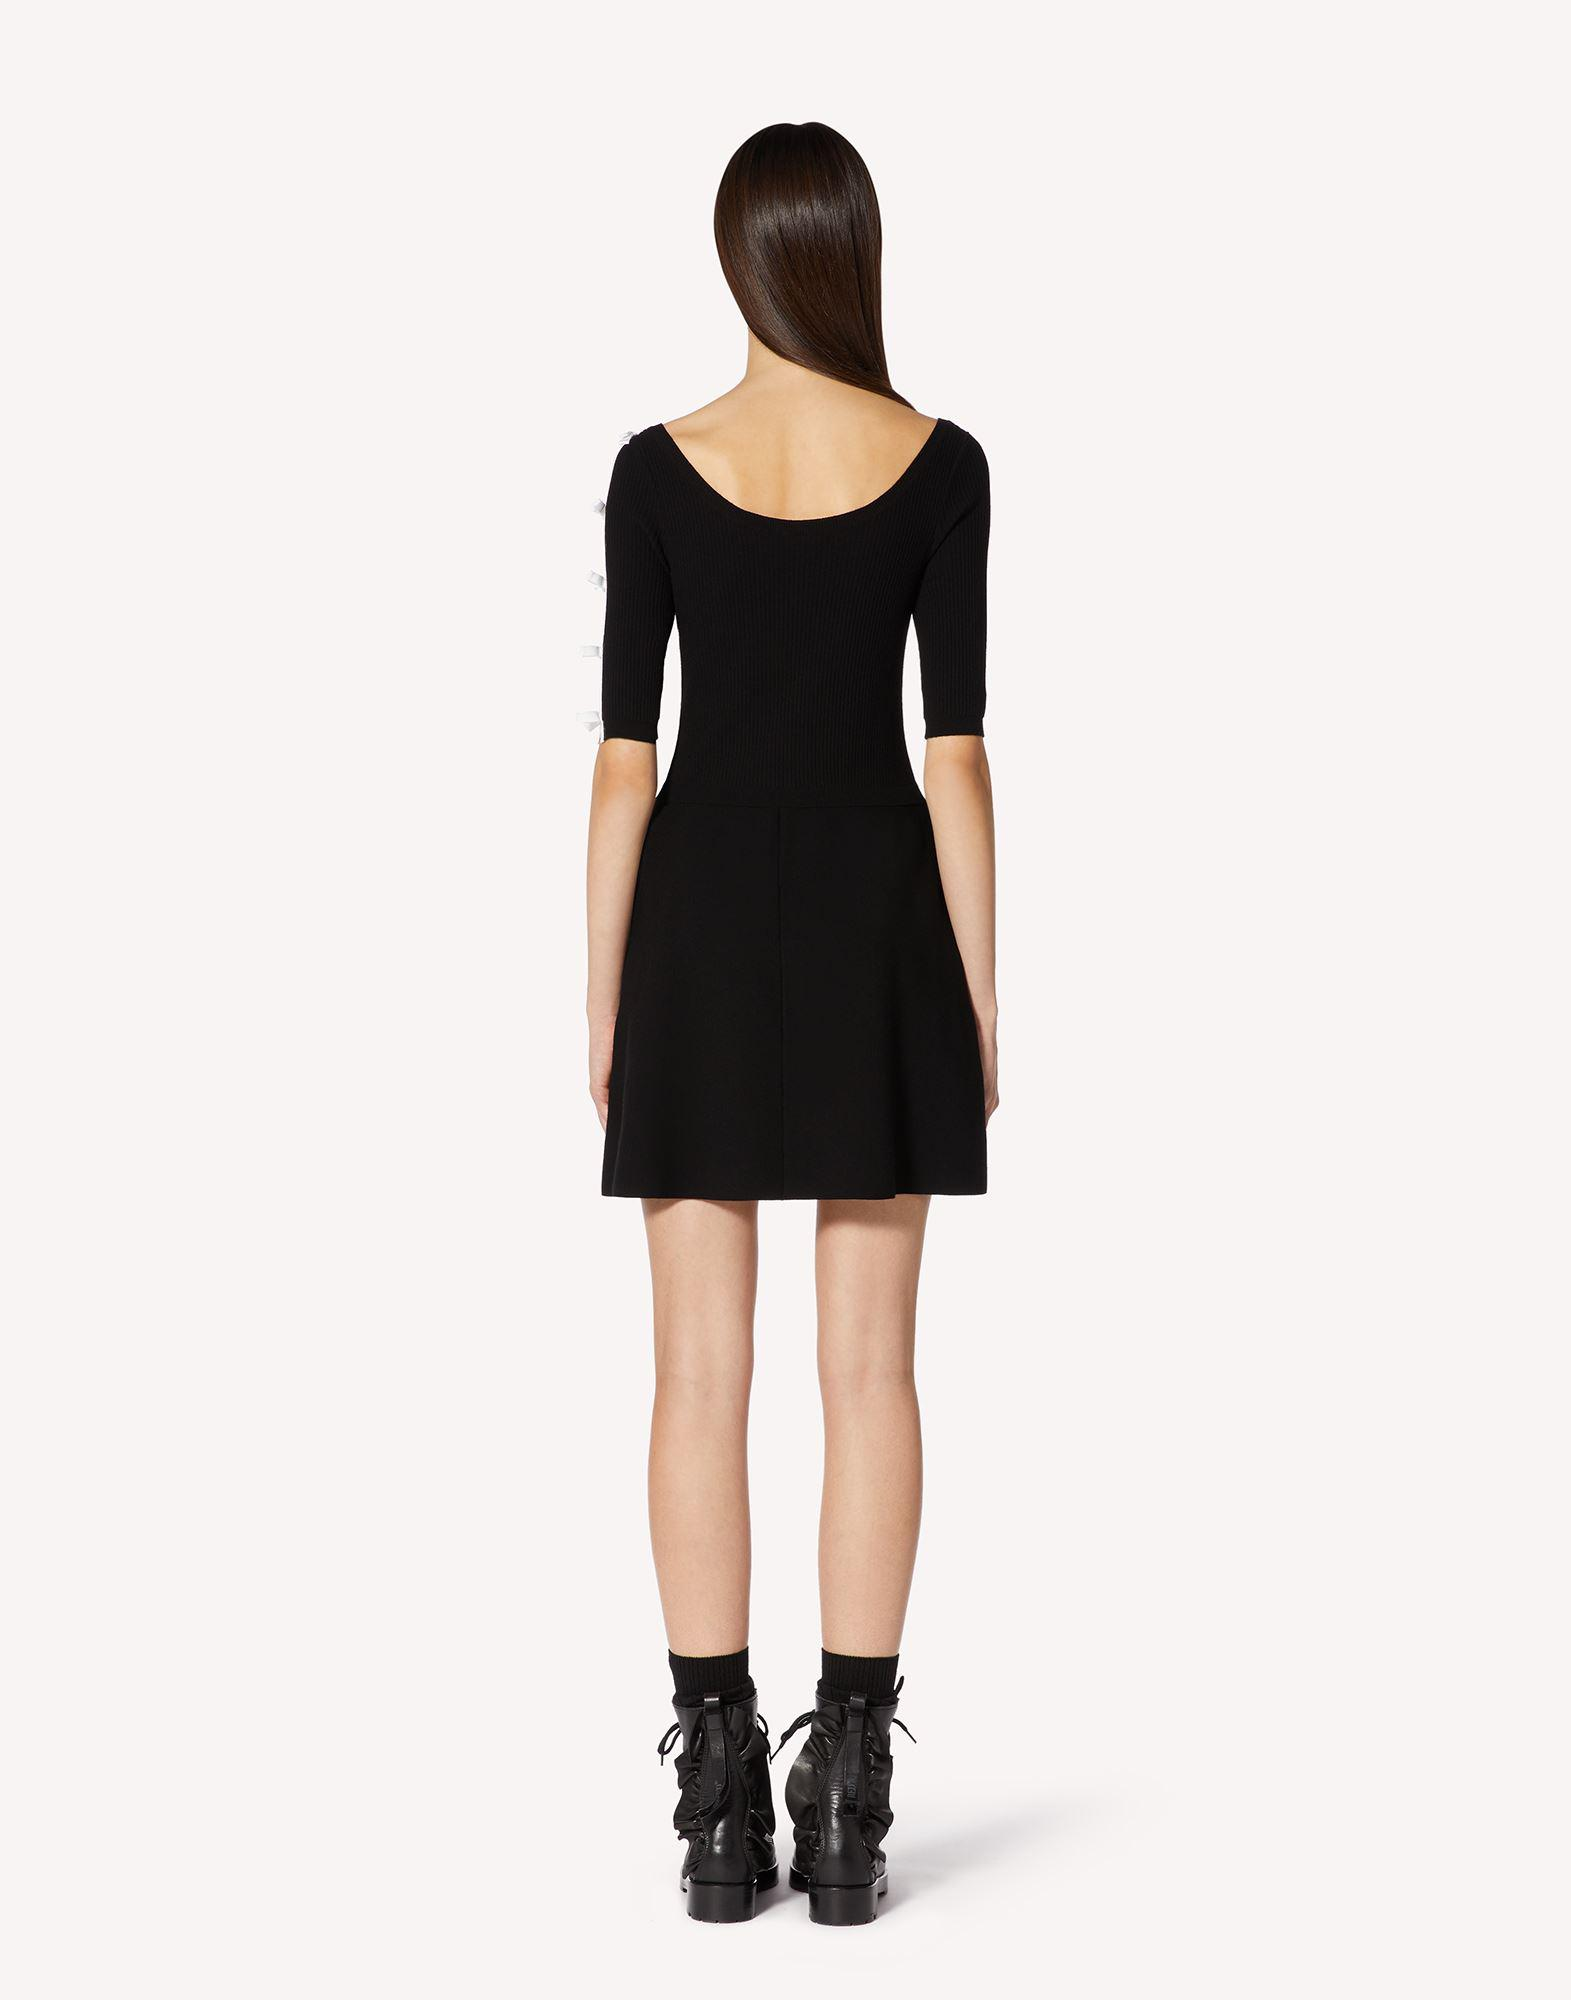 STRETCH VISCOSE KNIT DRESS WITH BOW DETAILS 1